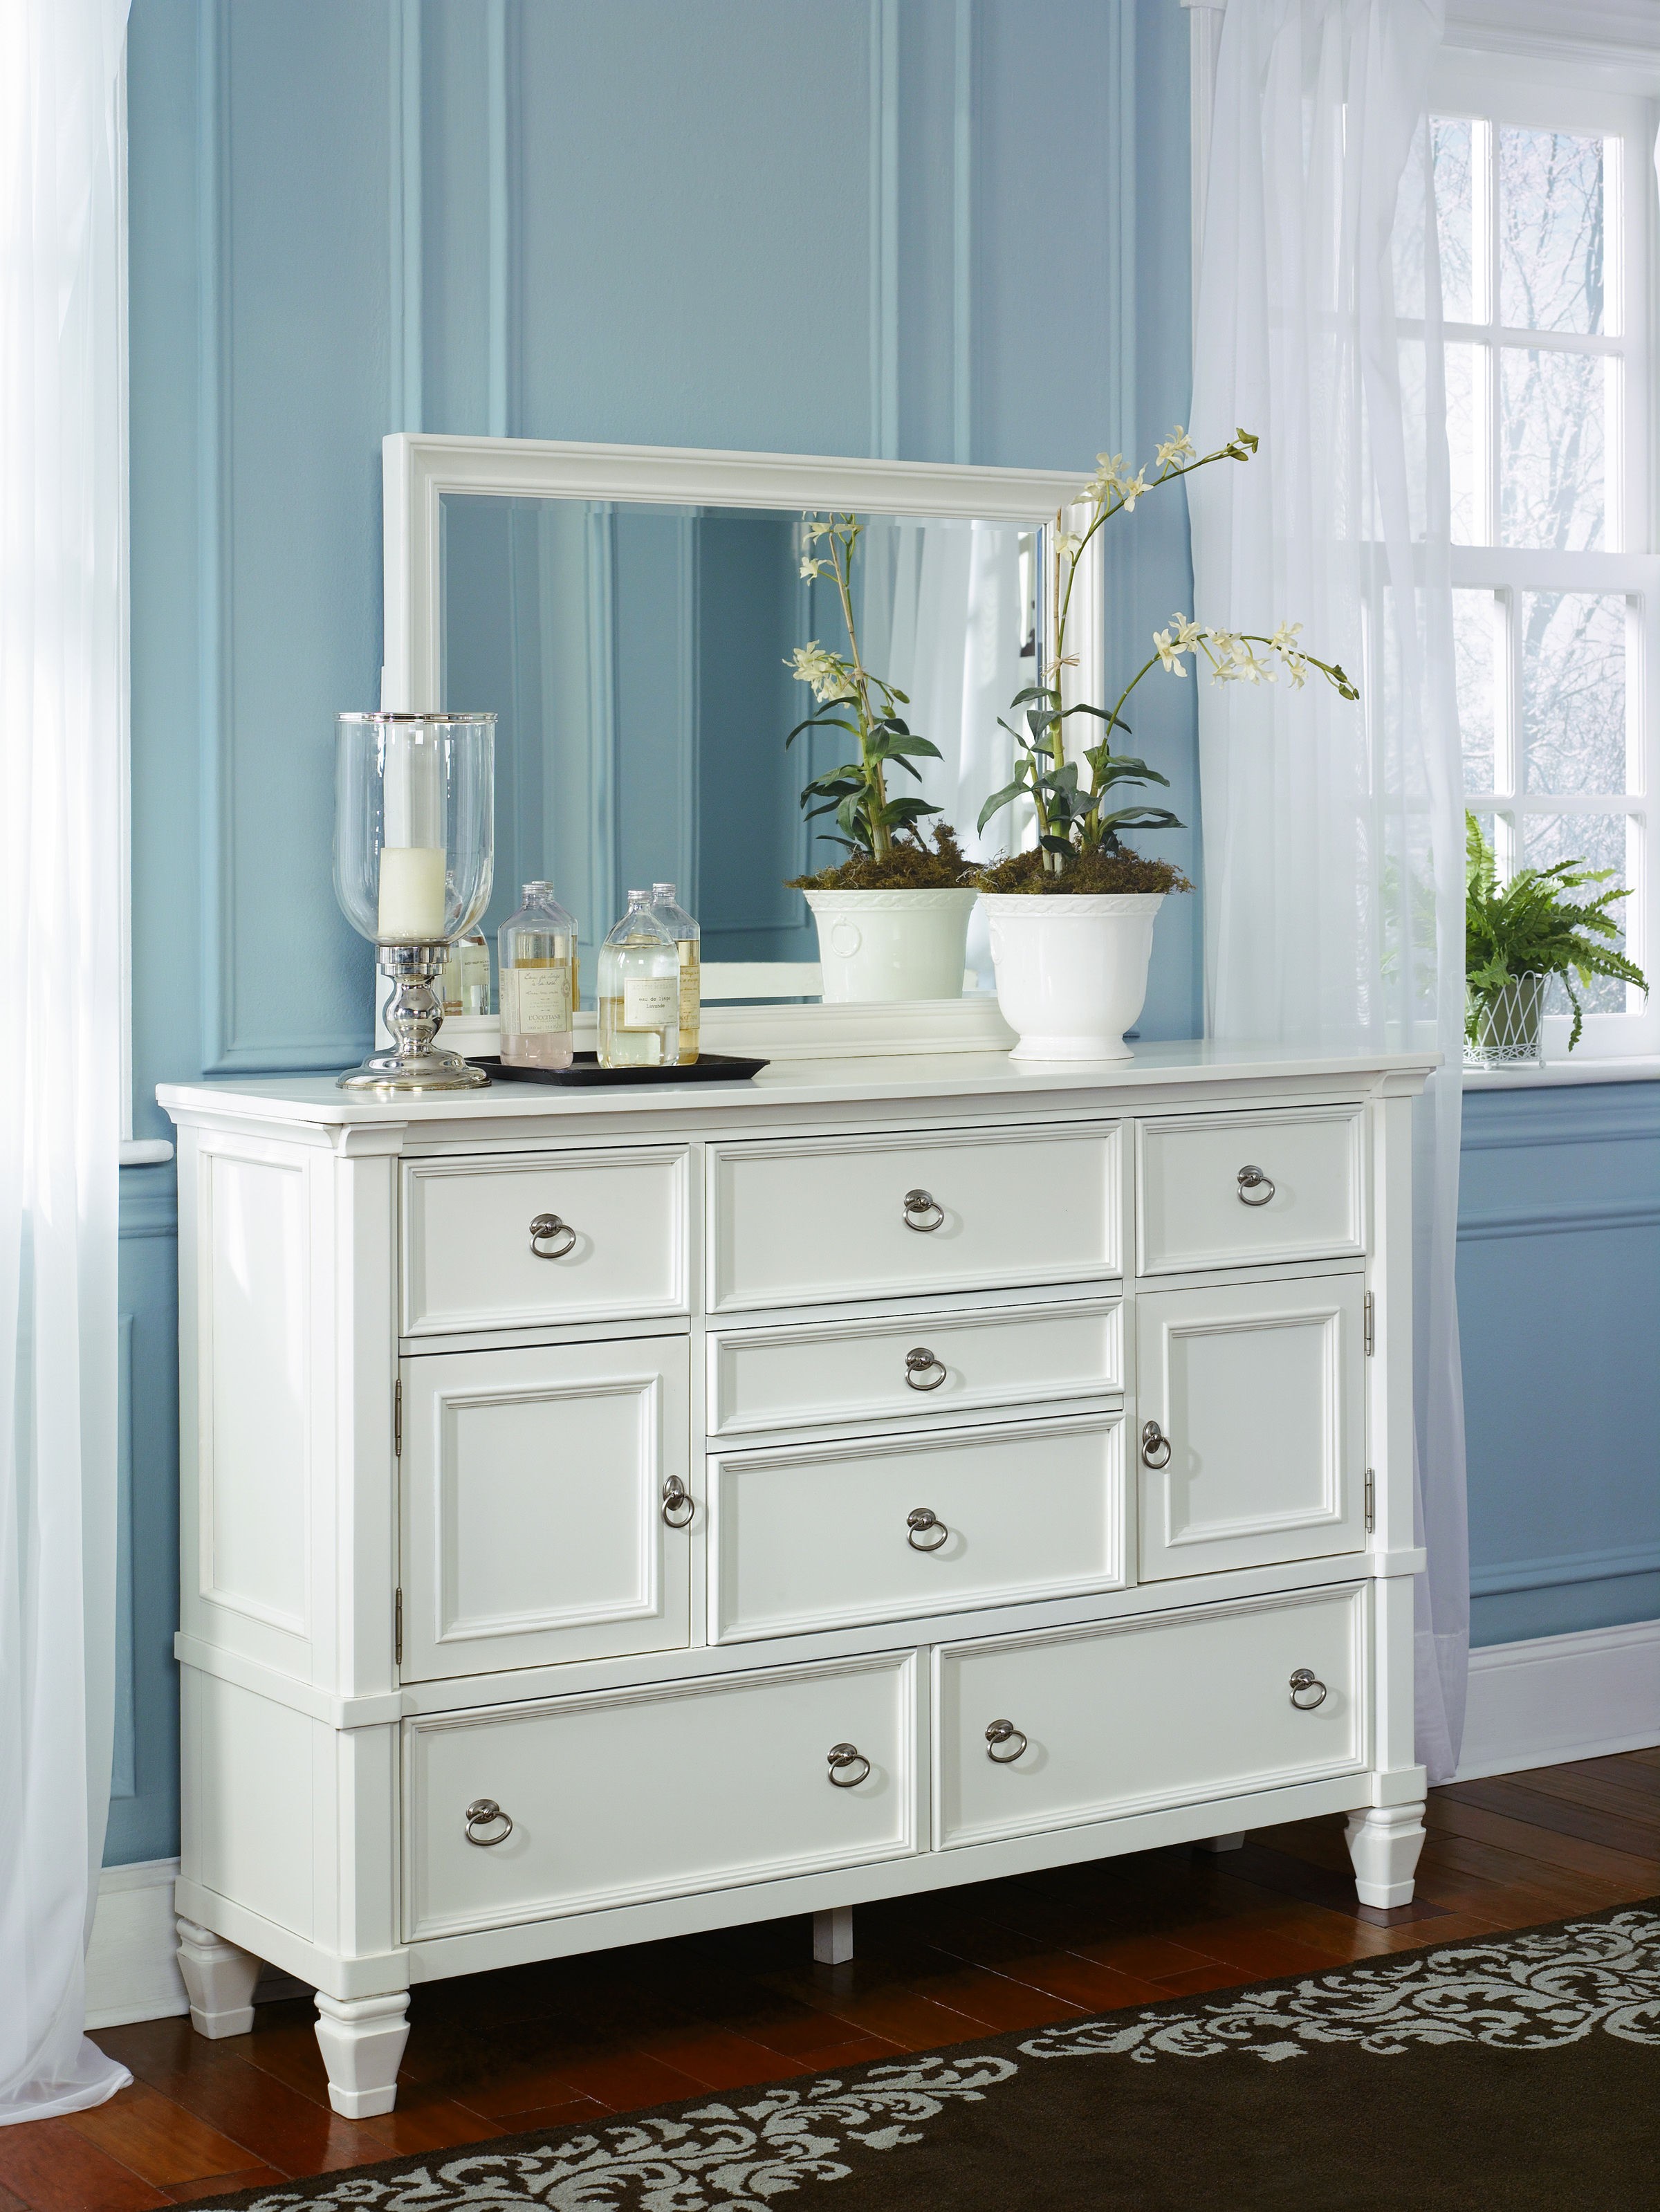 ashley furniture prentice dresser and bedroom mirror the classy home rh theclassyhome com millennium prentice bedroom set prentice bedroom set canada